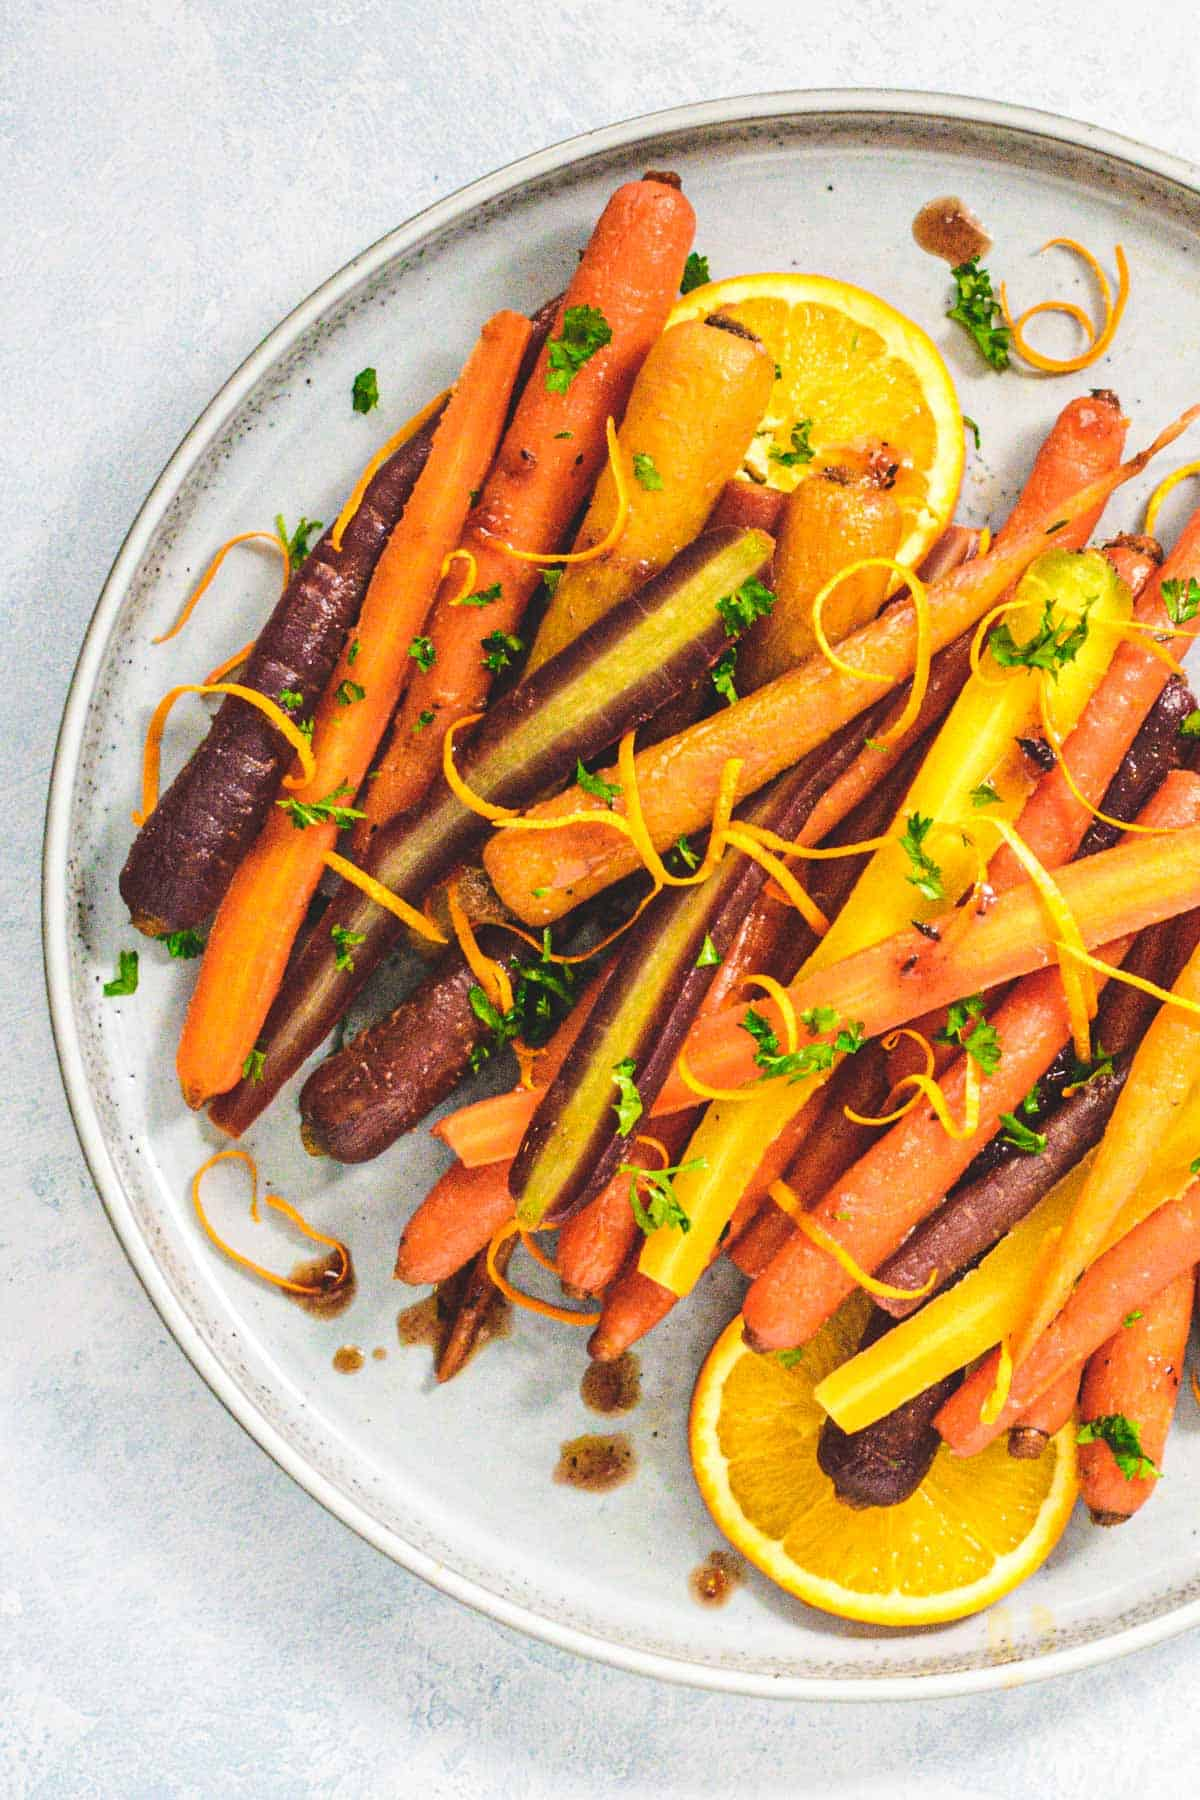 Honey glazed carrots with orange and cumin on plate with sliced oranges and orange zest